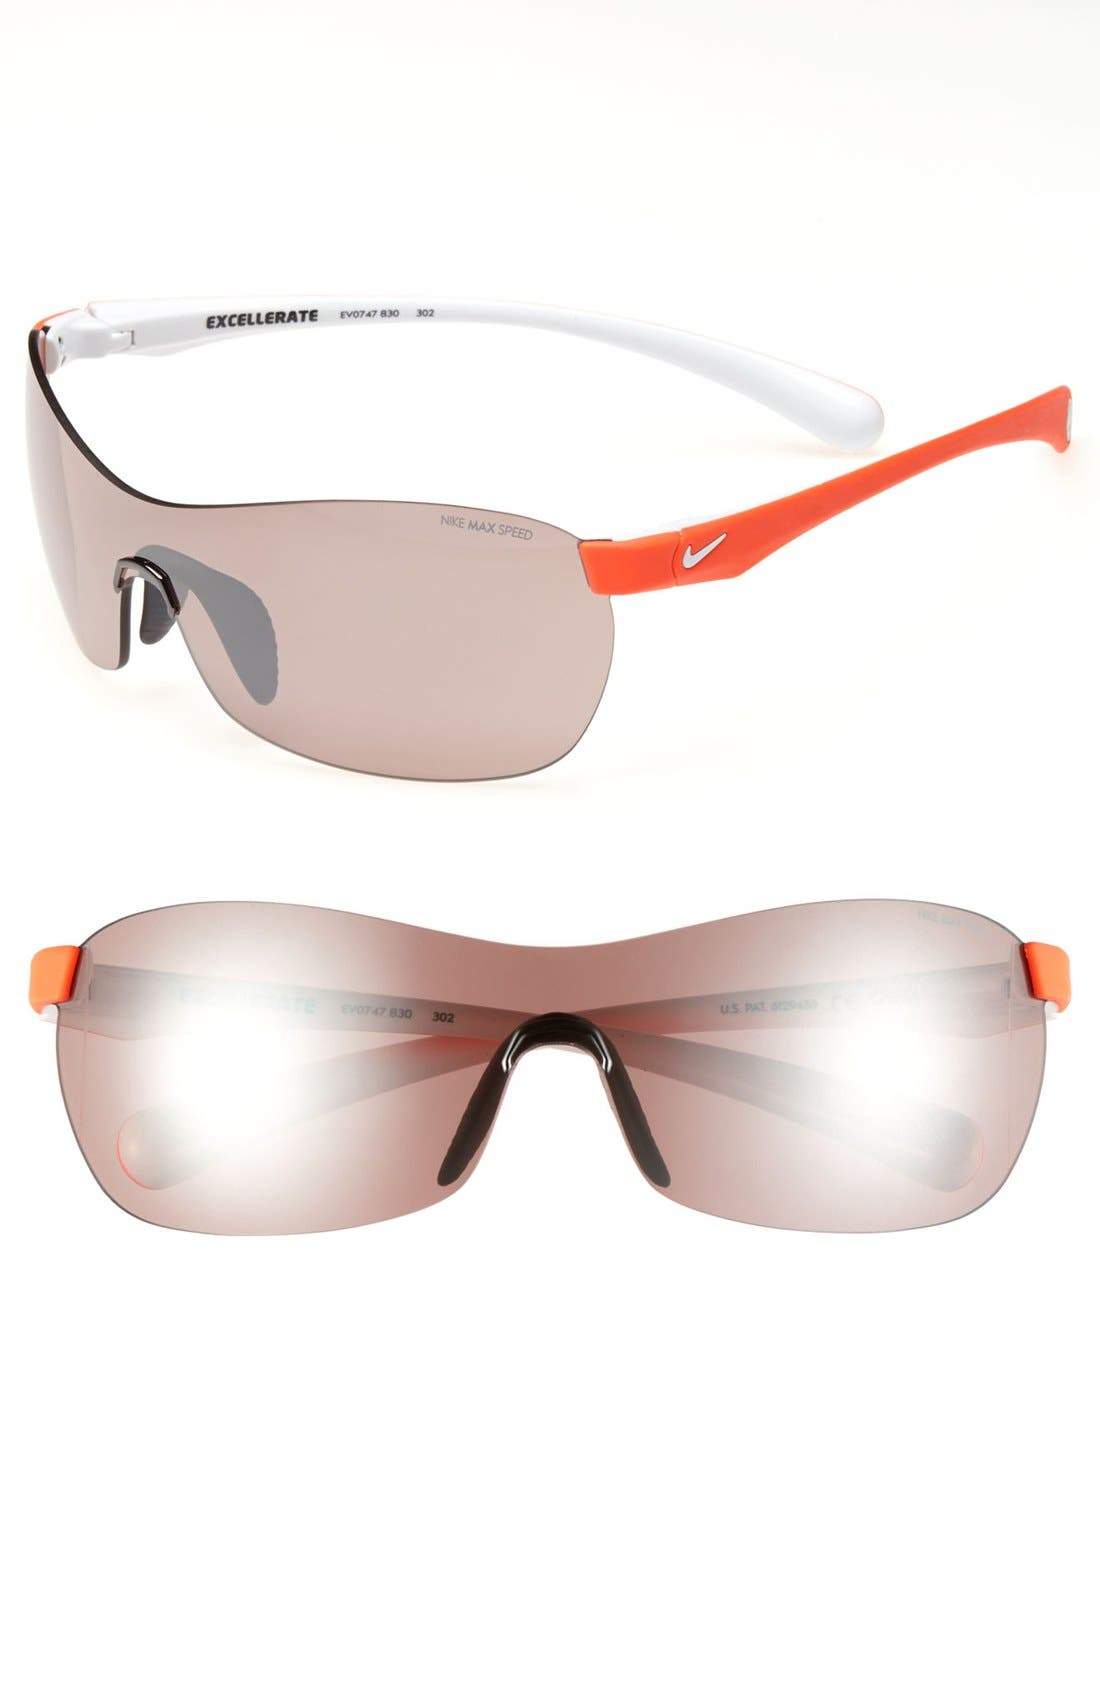 Main Image - Nike 'Excellerate' 62mm Polarized Sunglasses